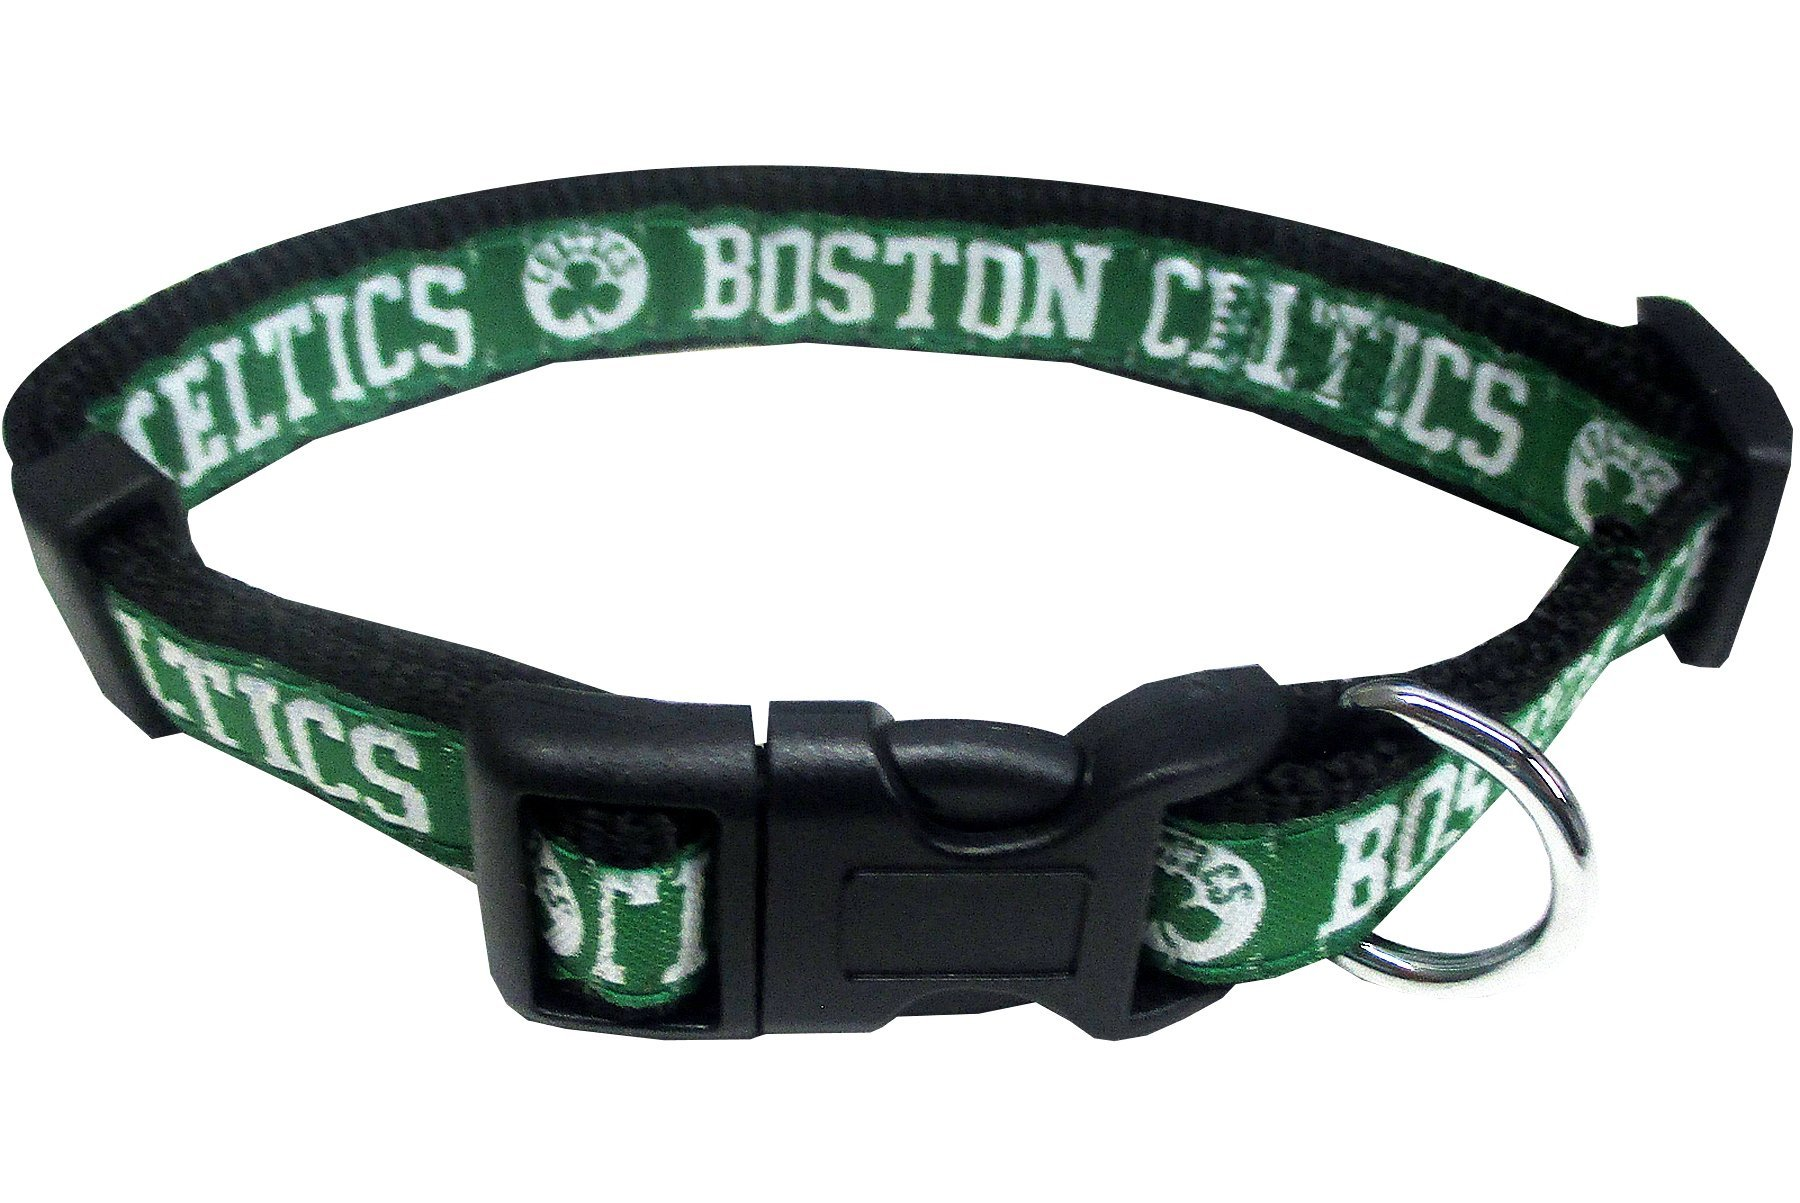 NBA BOSTON CELTICS Dog Collar, Size Large. Best Pet Collar for all Sports Fans by Pets First